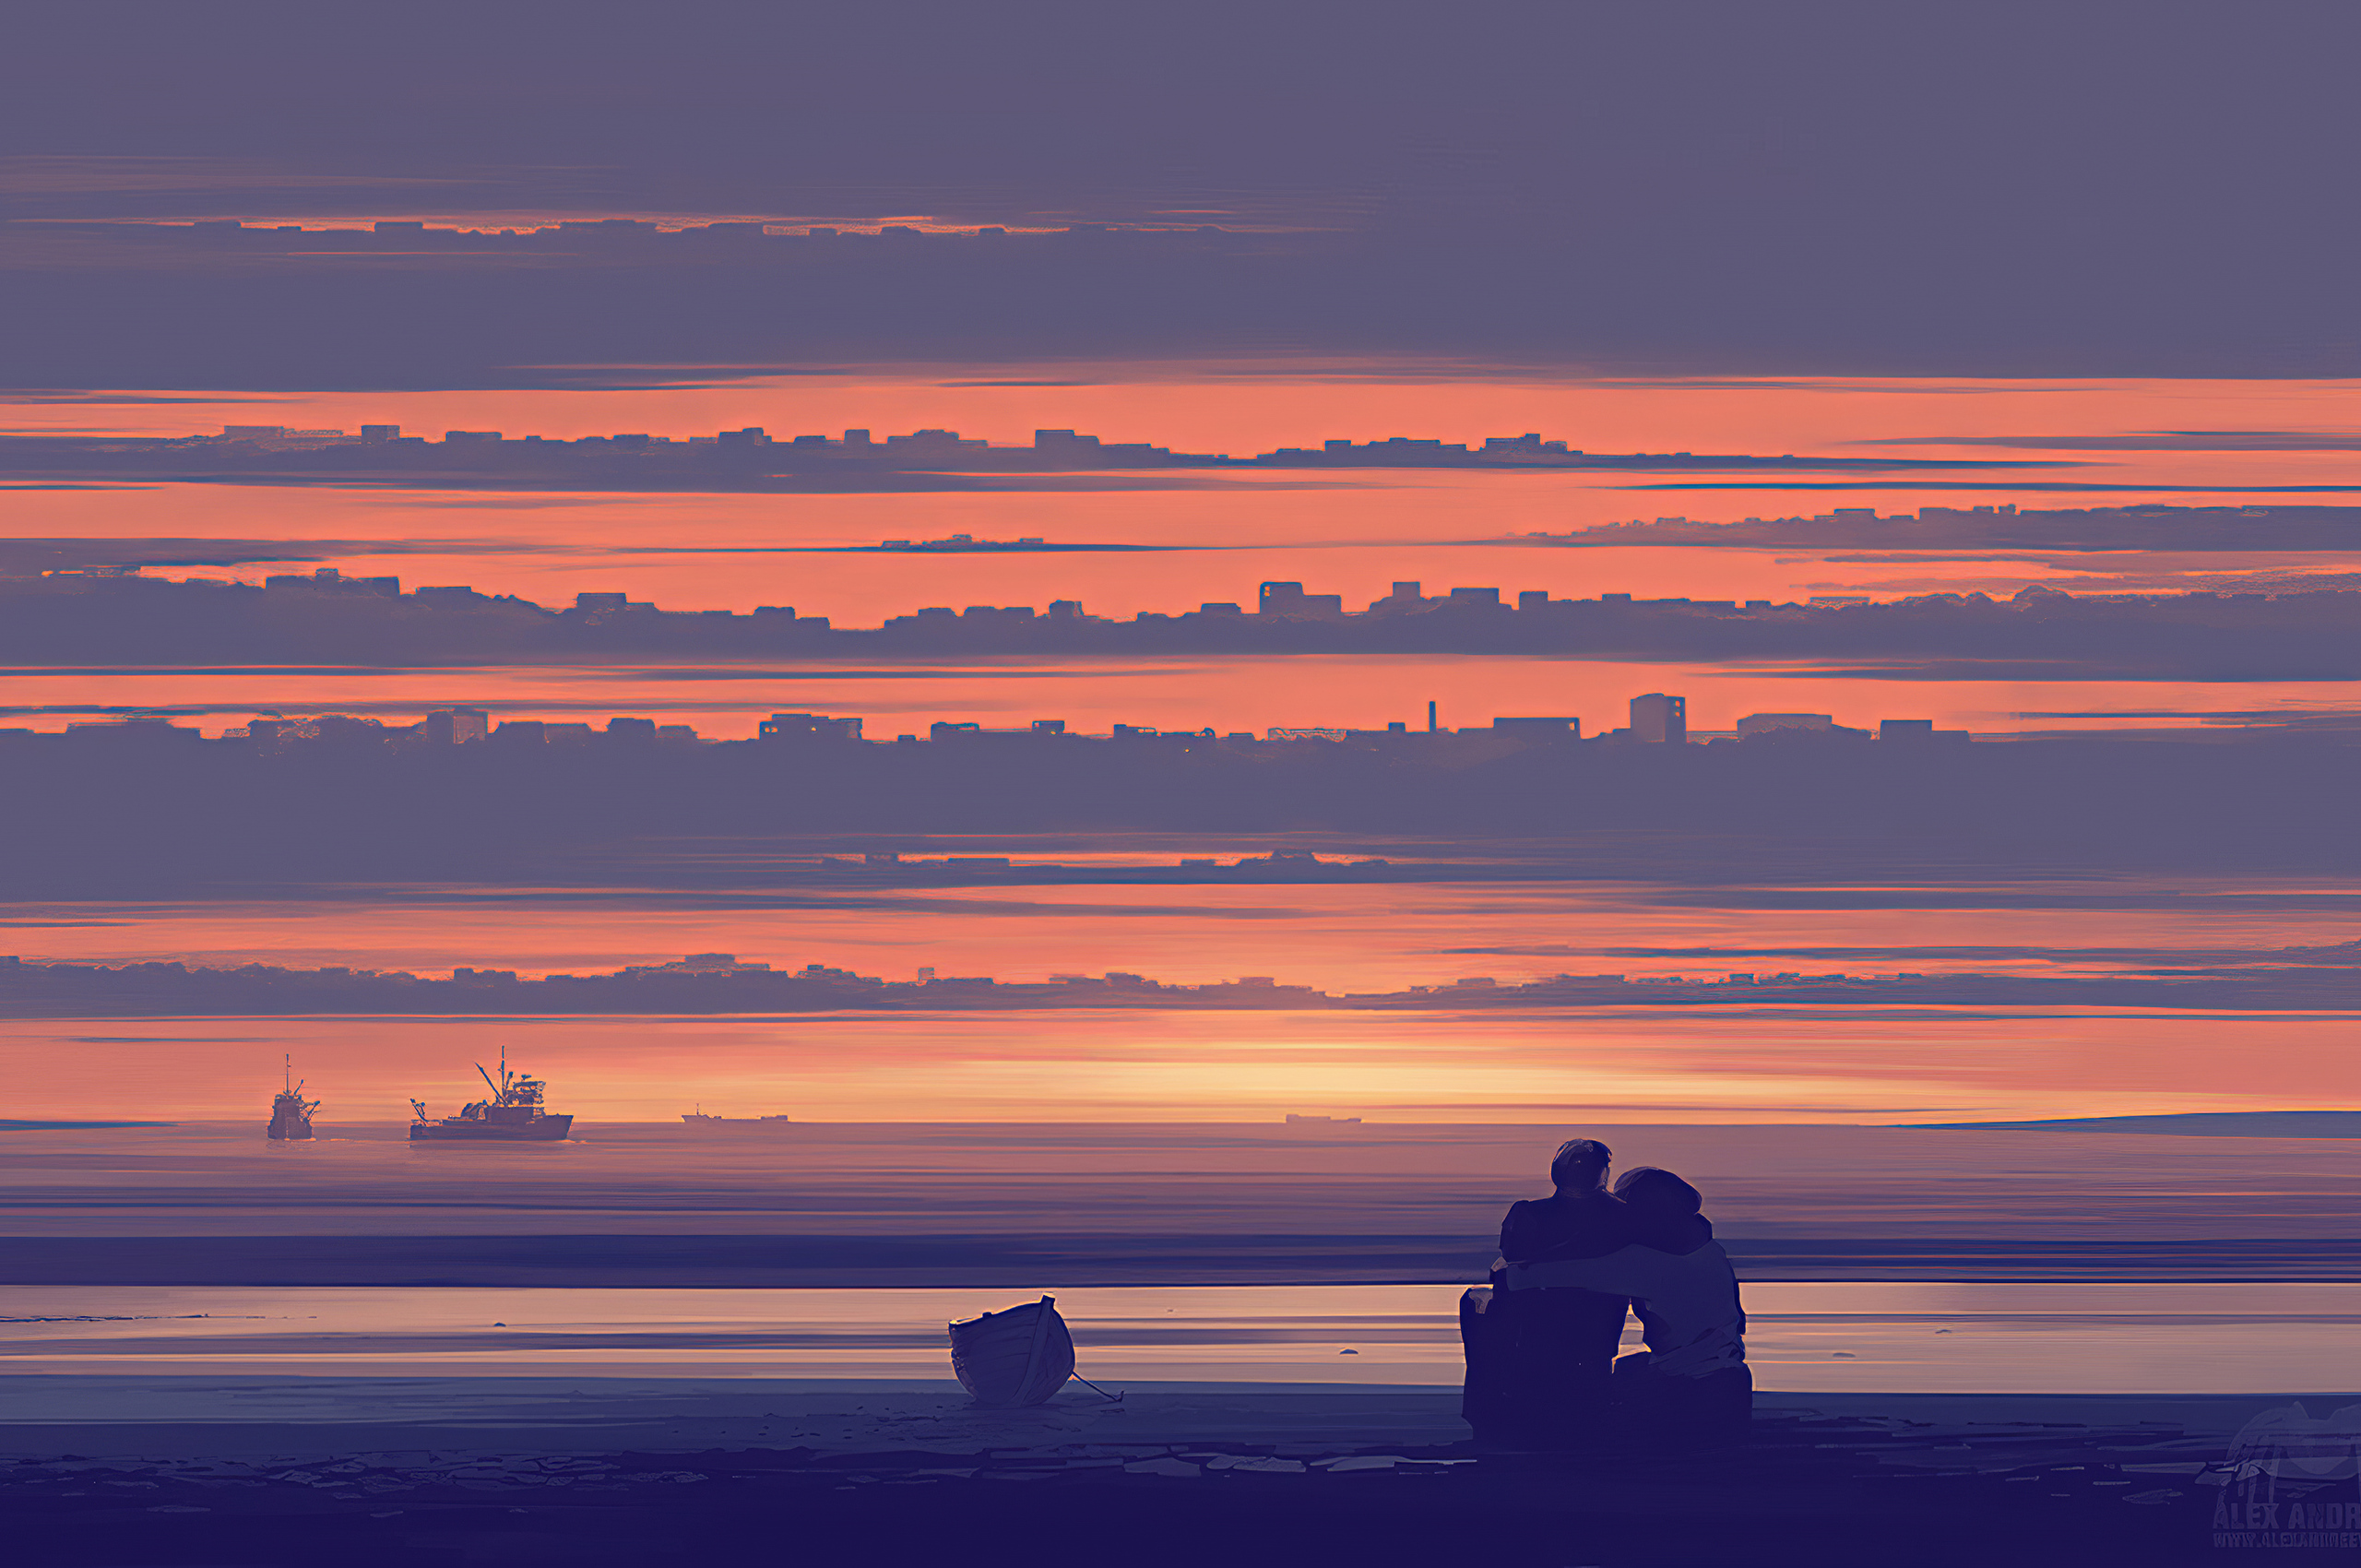 couple-in-love-sea-side-4k-uh.jpg